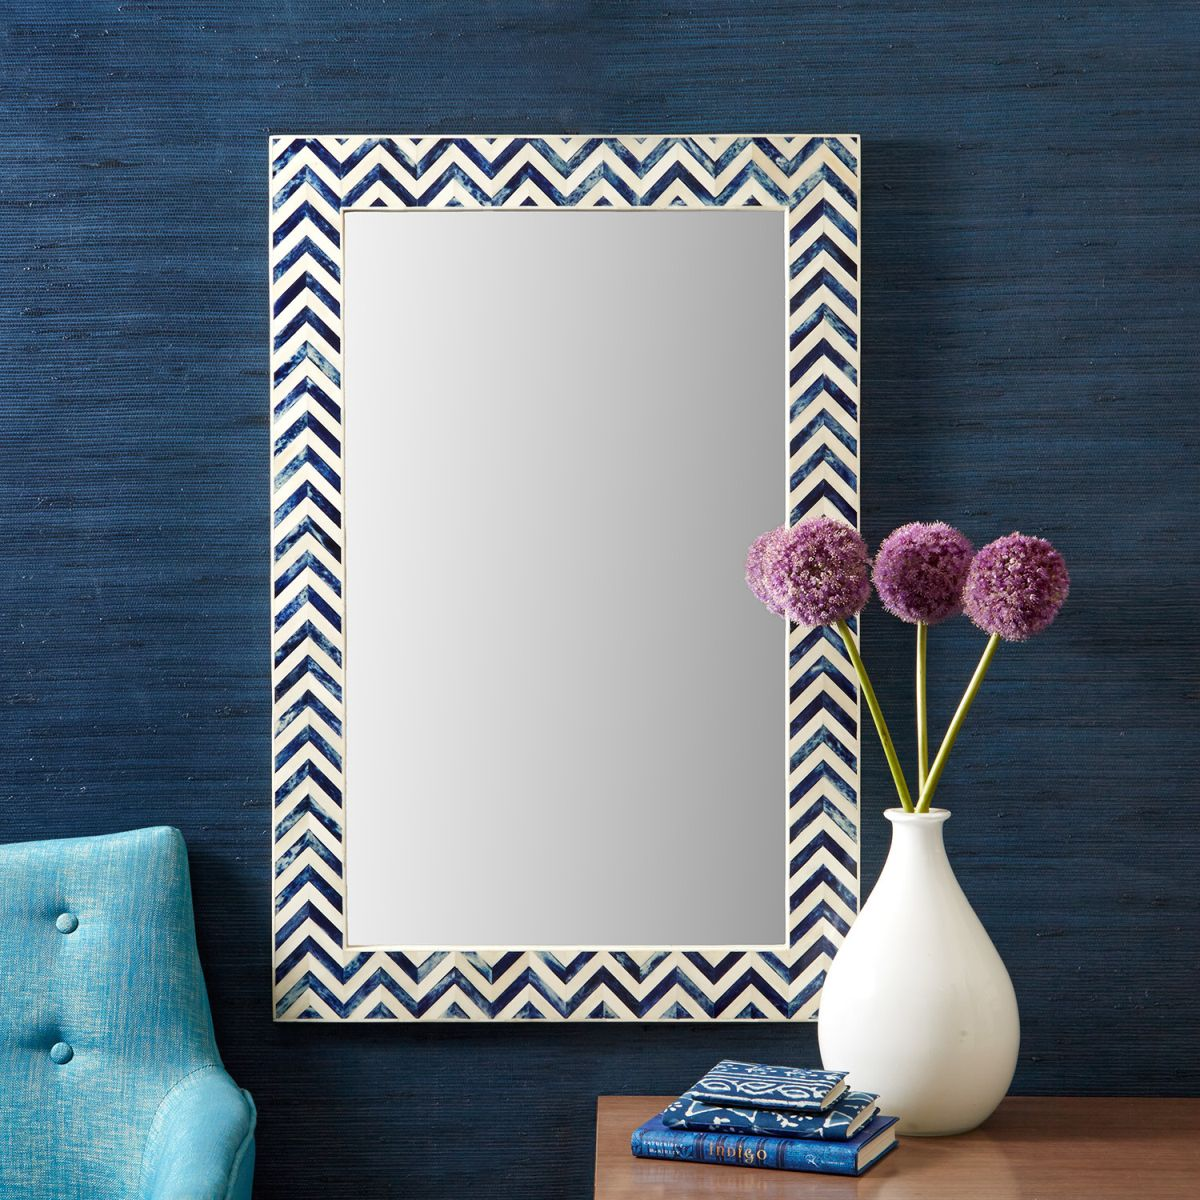 Chevron frame for mirror